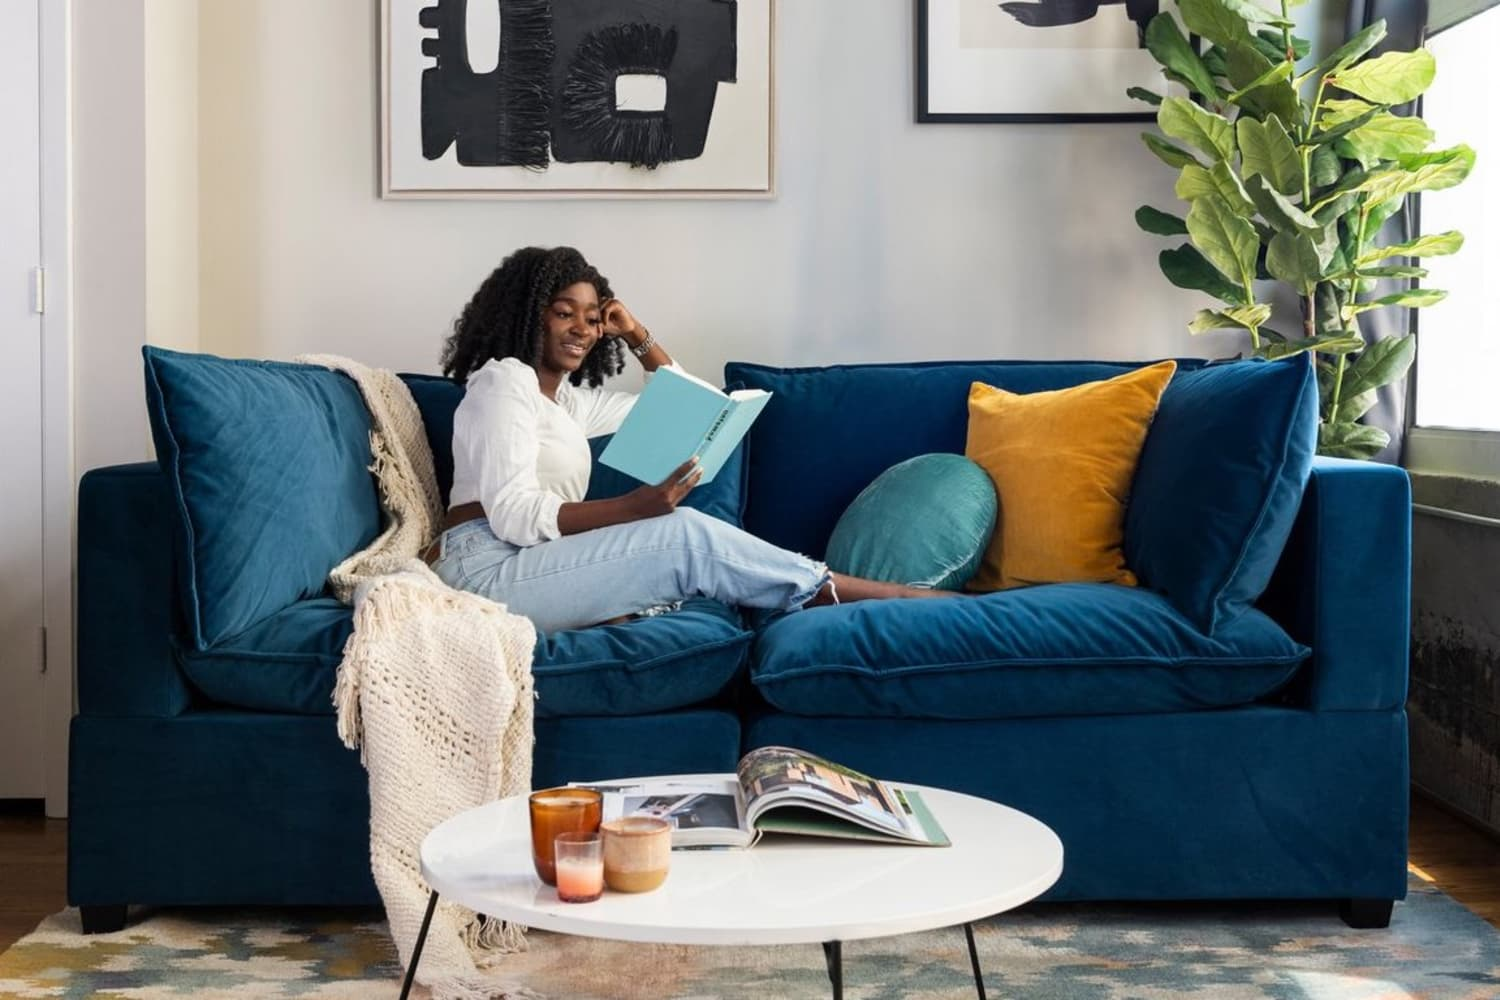 I Switched from a Traditional Sofa to This Super Cozy Sectional and I'm Never Going Back — Here's Why